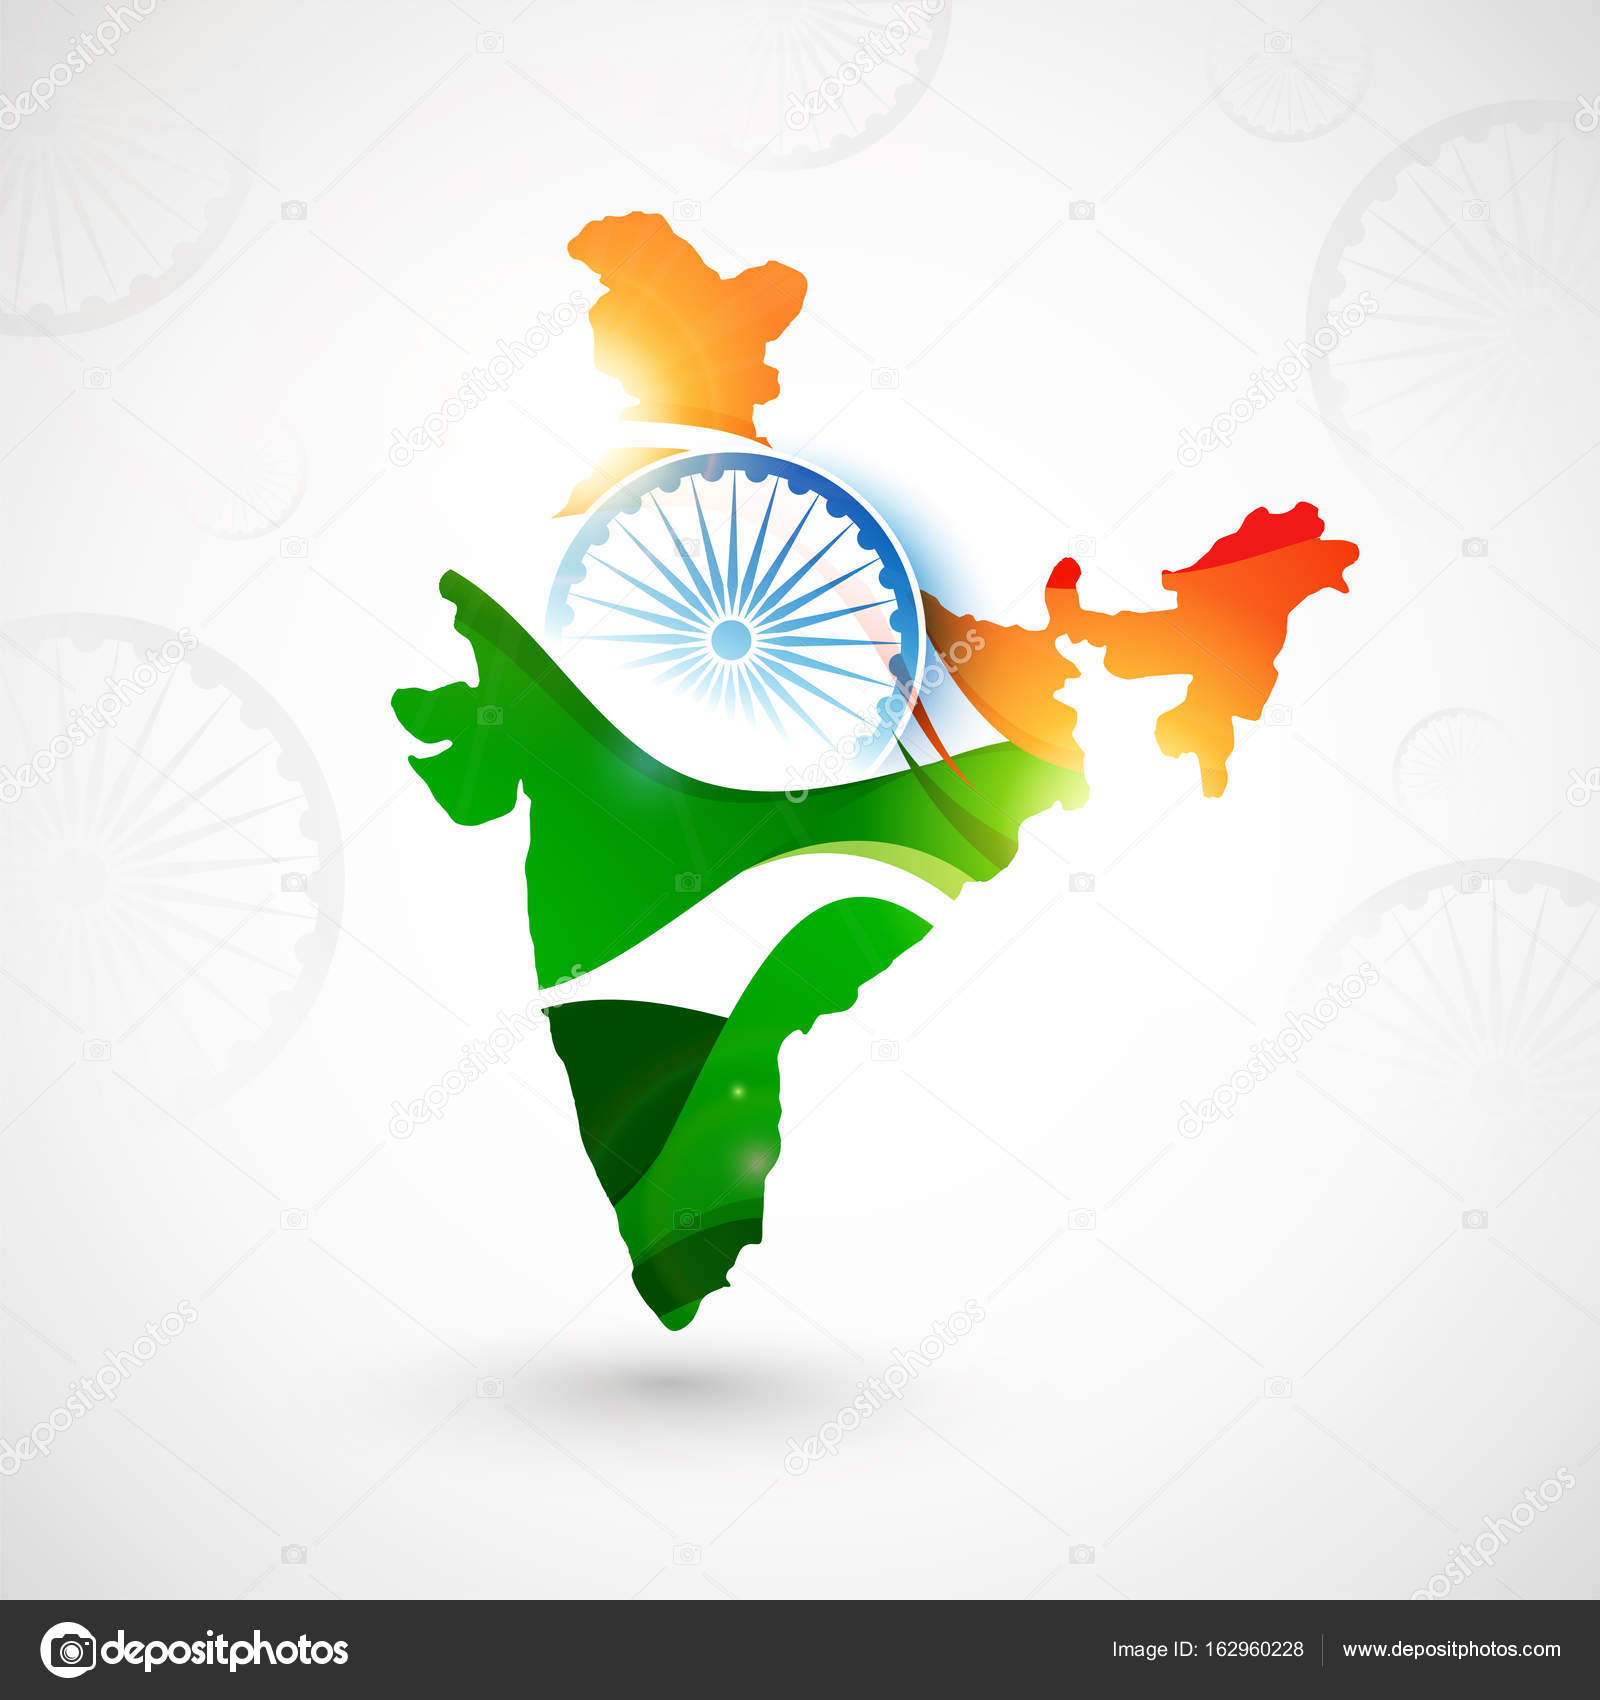 Republic of India Map in Indian Flag colors. — Stock Vector ... on indian print with flag, indian map with key, indian man with flag, india flag,